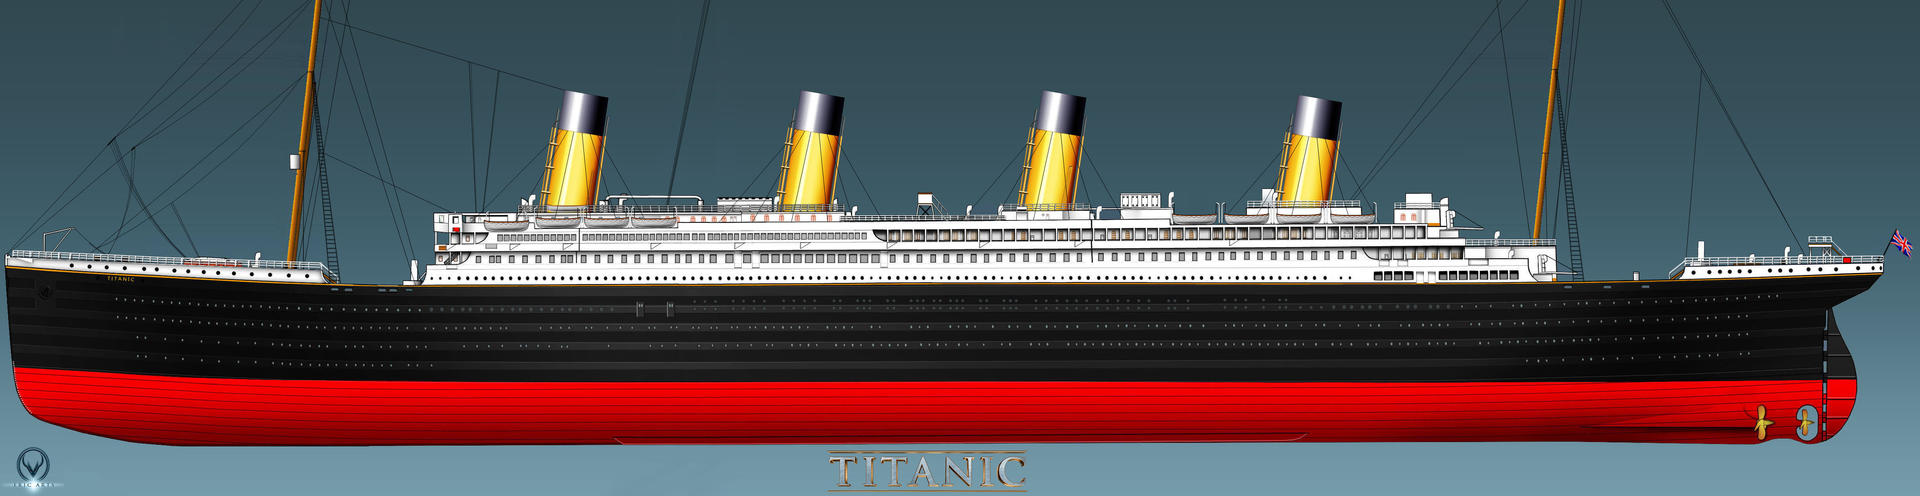 Rms Titanic Port Side Profile Complete By Eric Arts Inc On